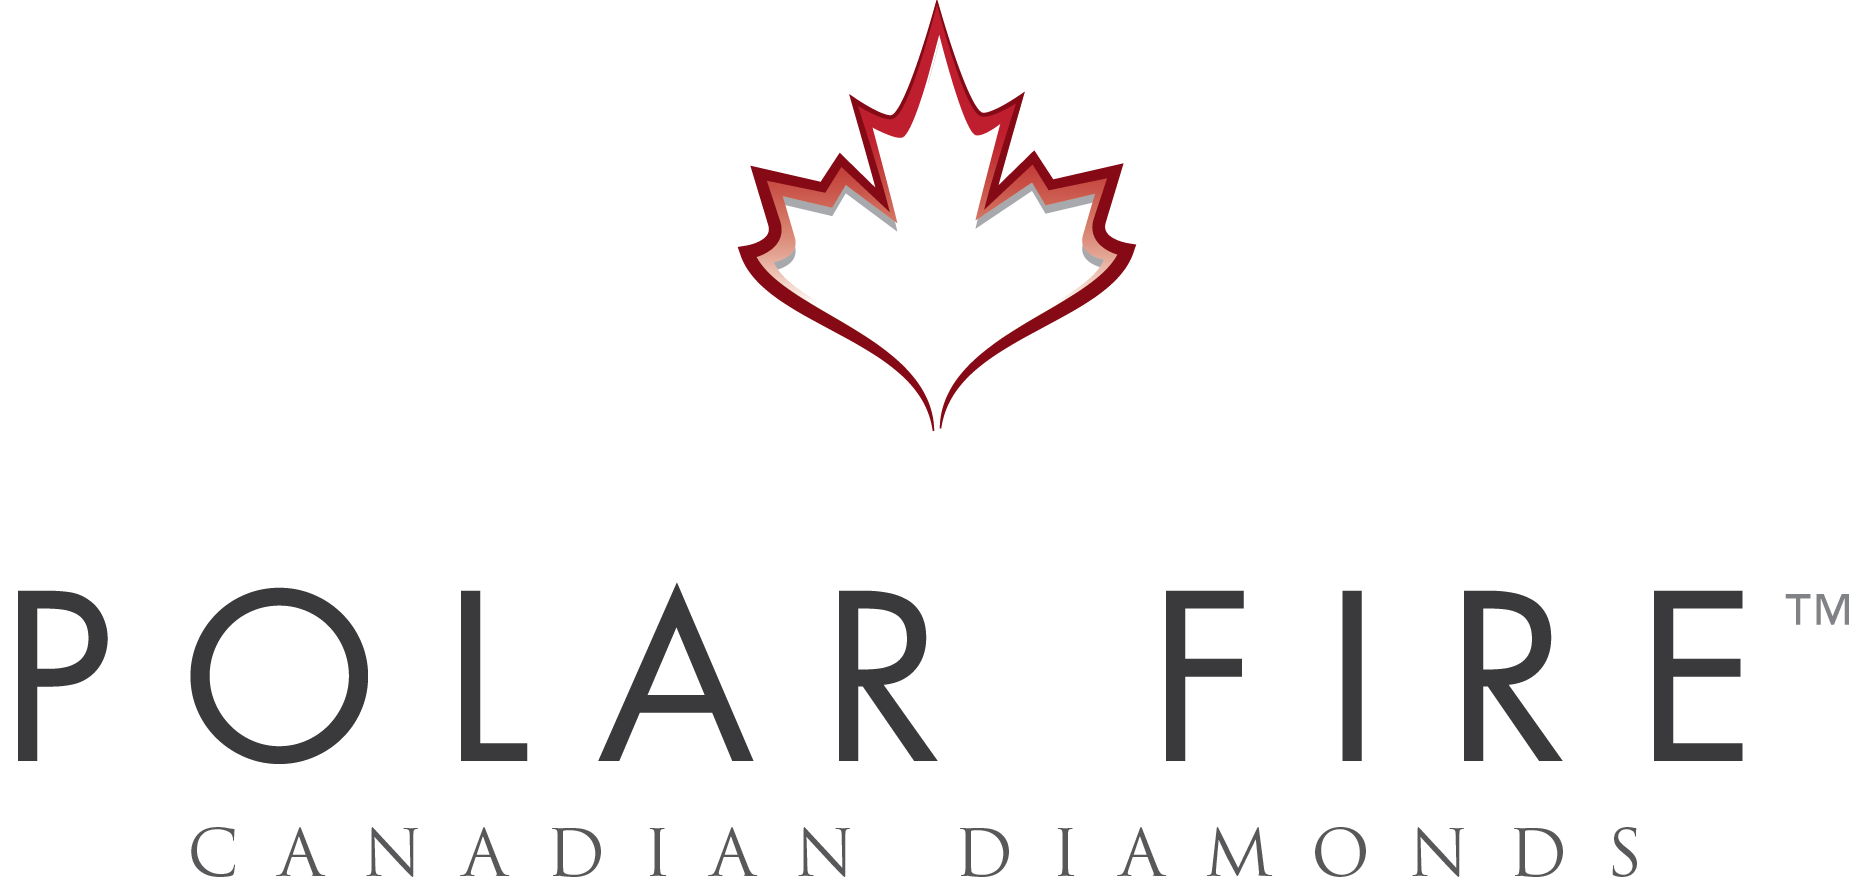 polar fire logo darker text.png